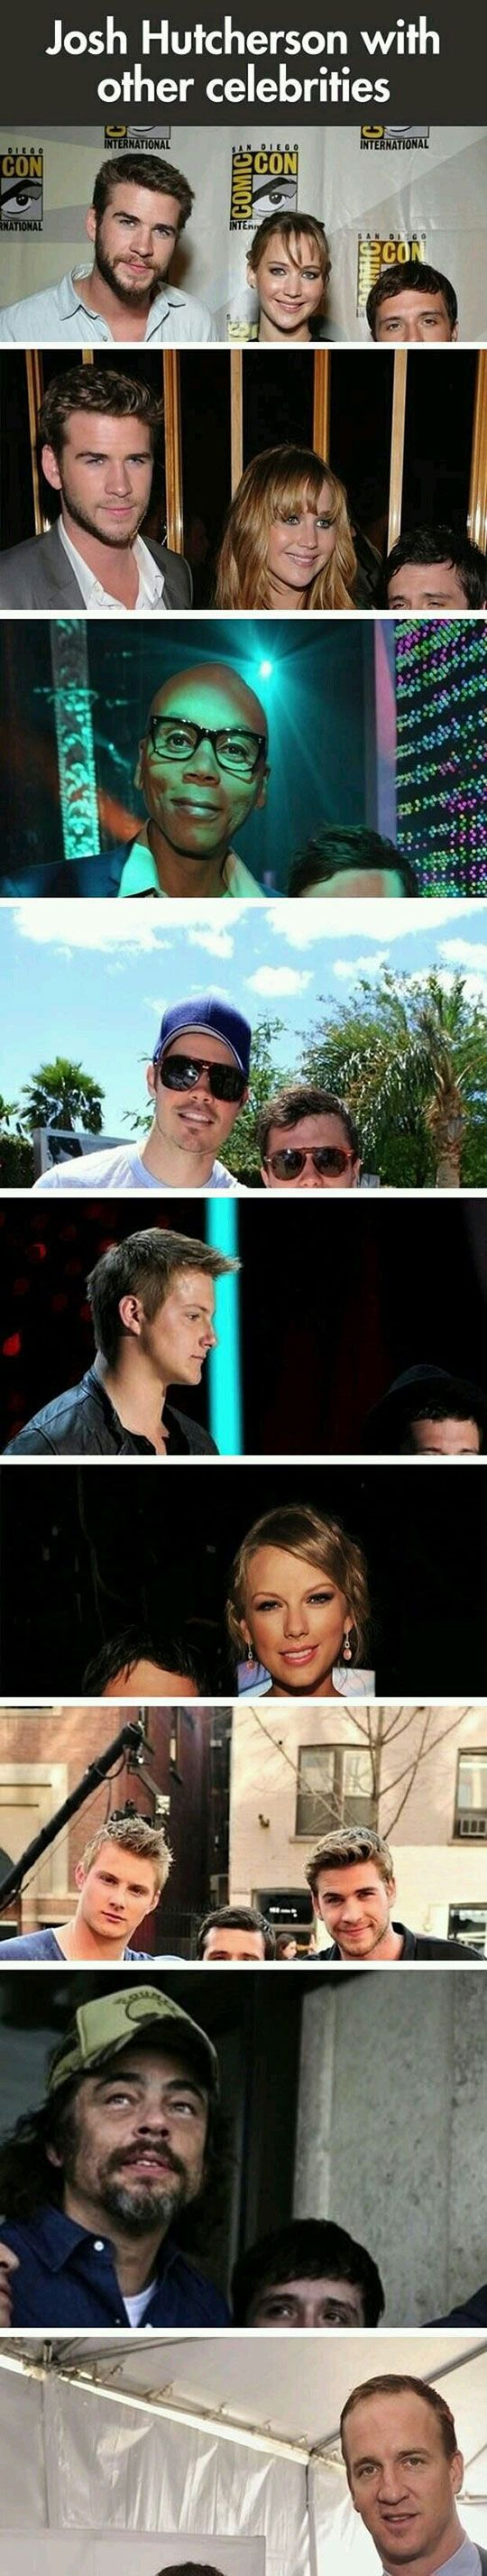 Josh Hutcherson With Other Celebrities